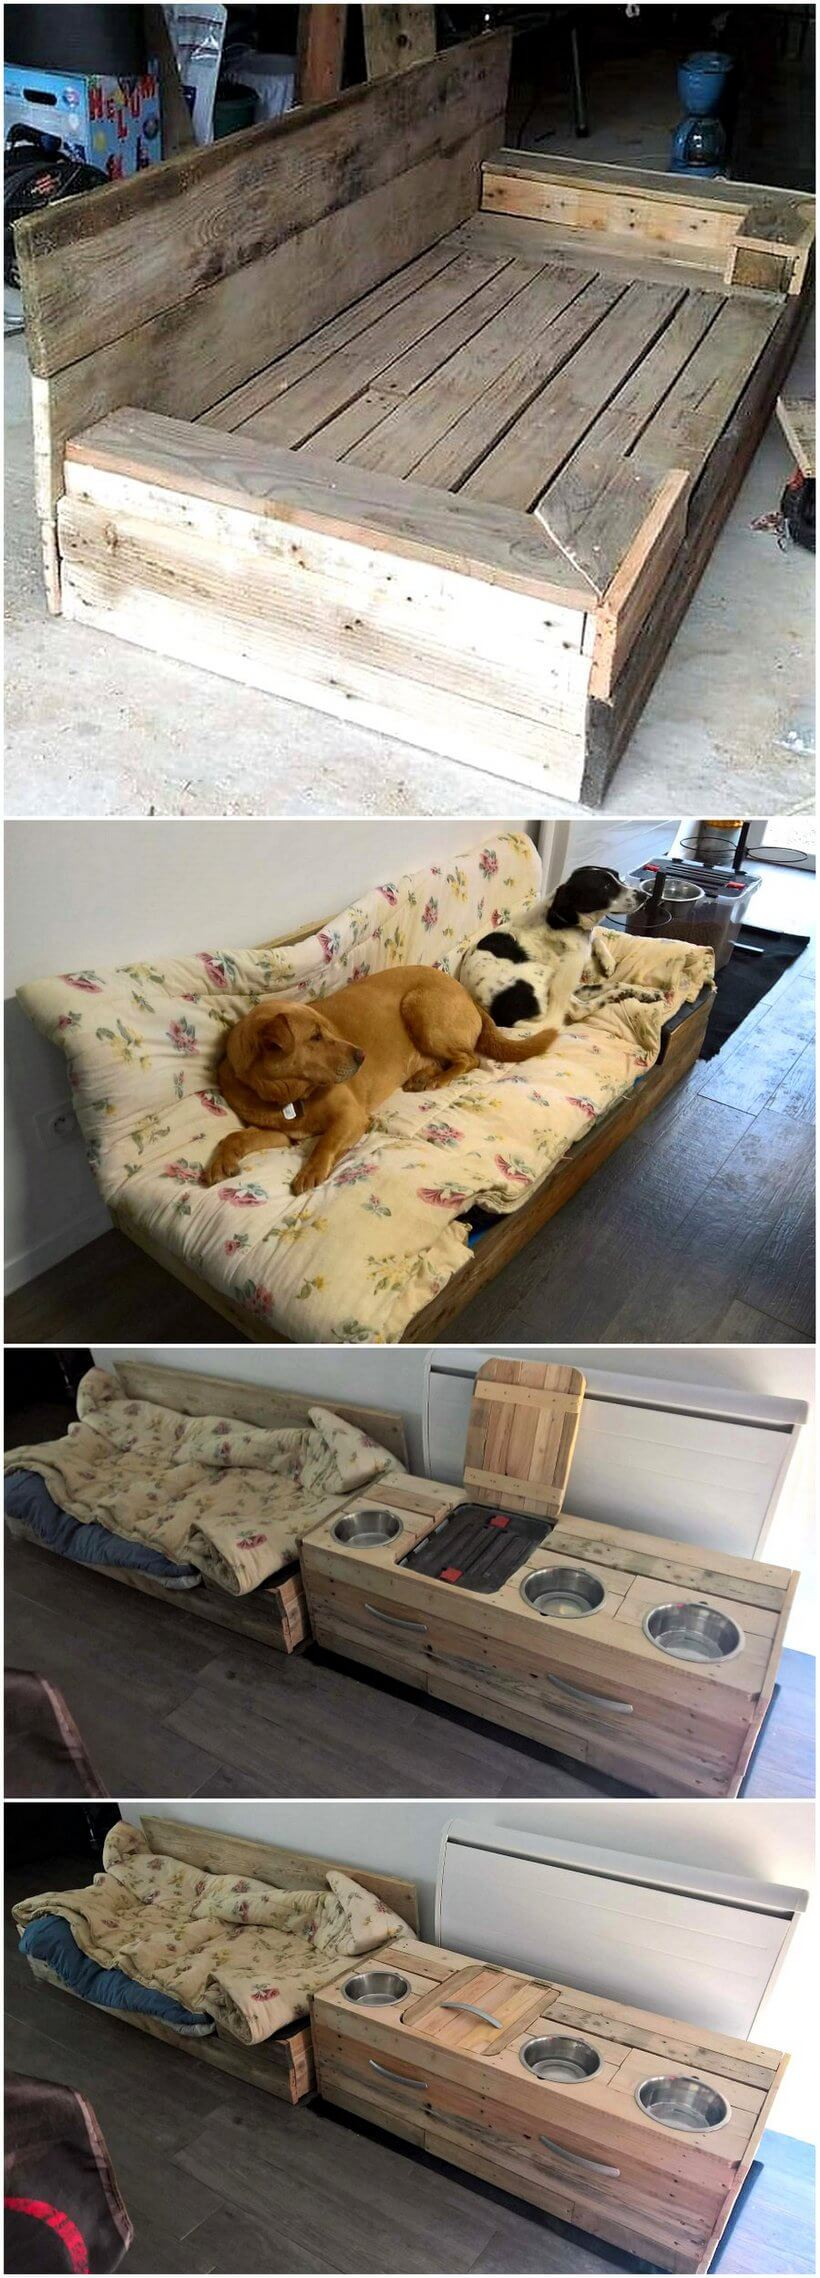 wooden pallet dog bed and food bowls